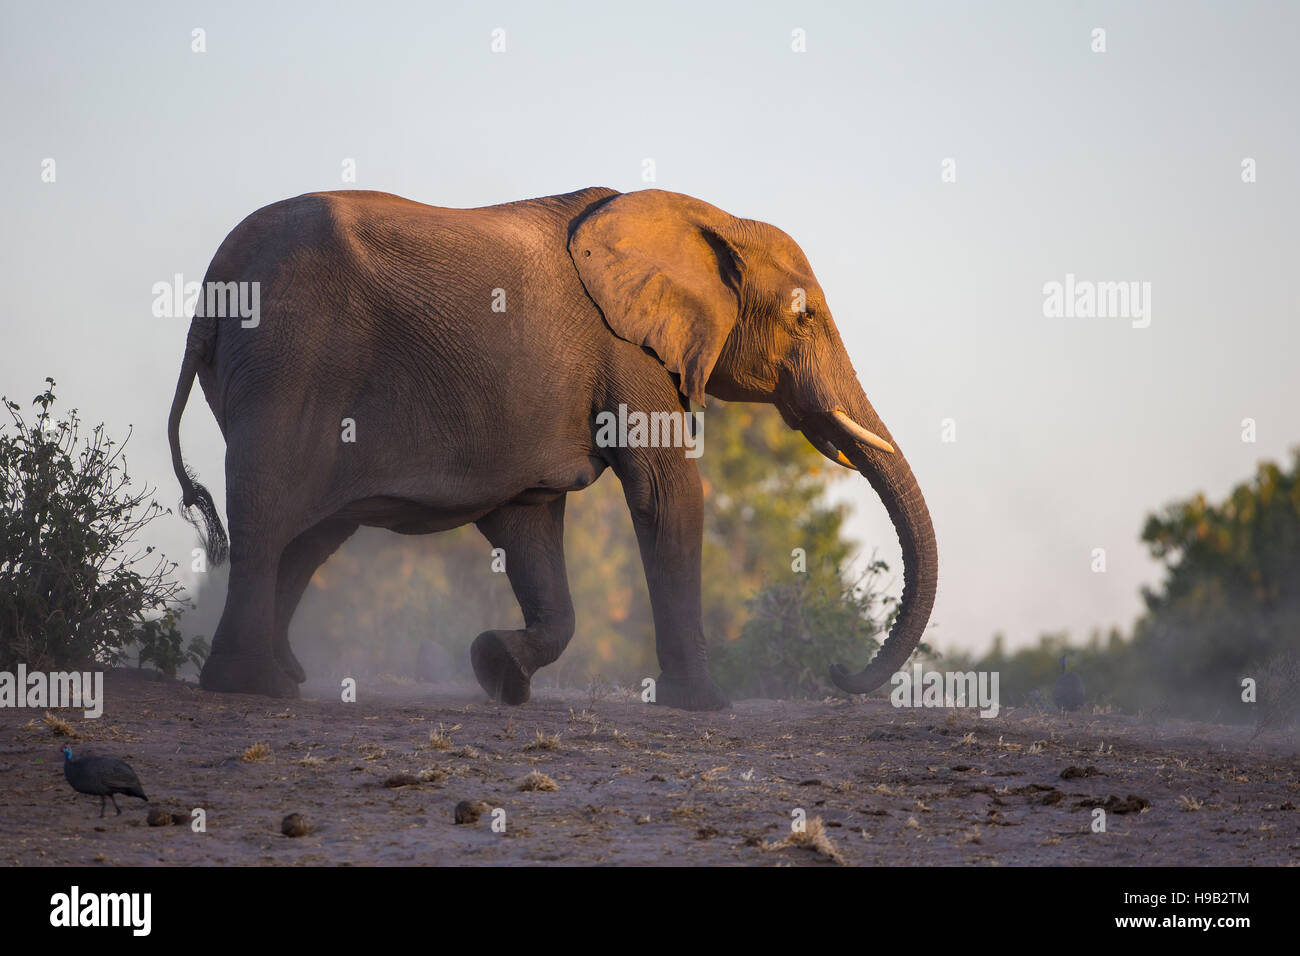 Mighty African Elephant Loxodonta africana creating dust in the dry earth - Stock Image